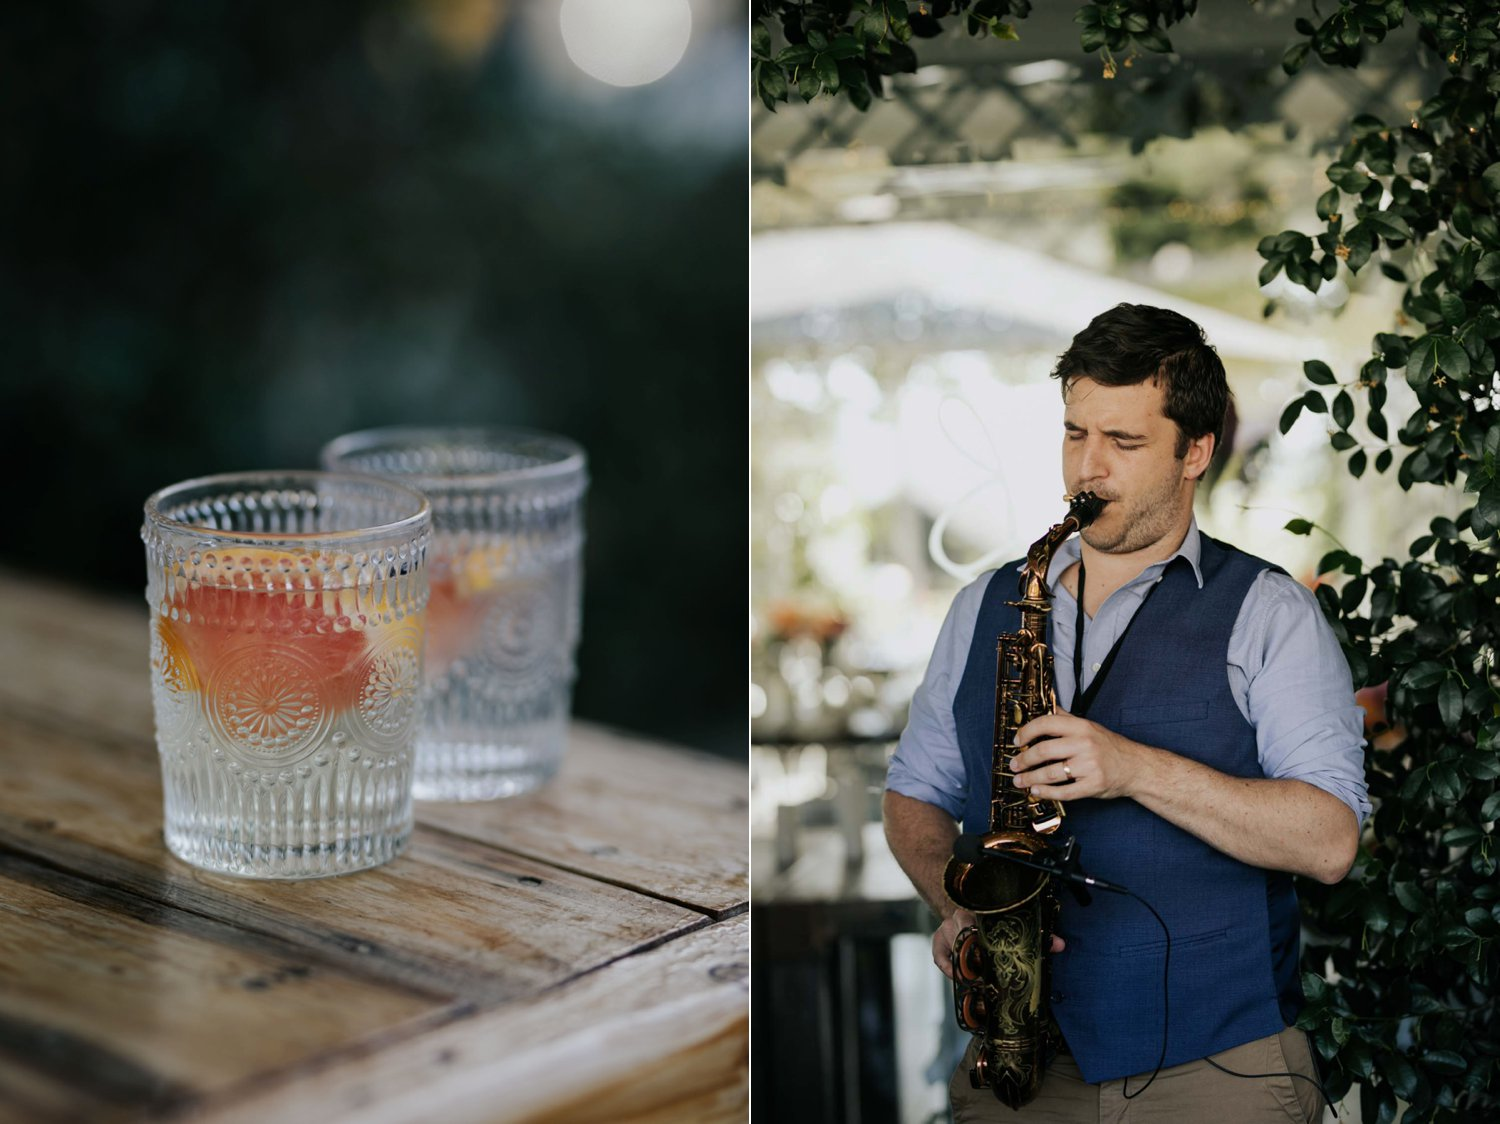 Love music and gin entertainment ideas for wedding cocktail hour